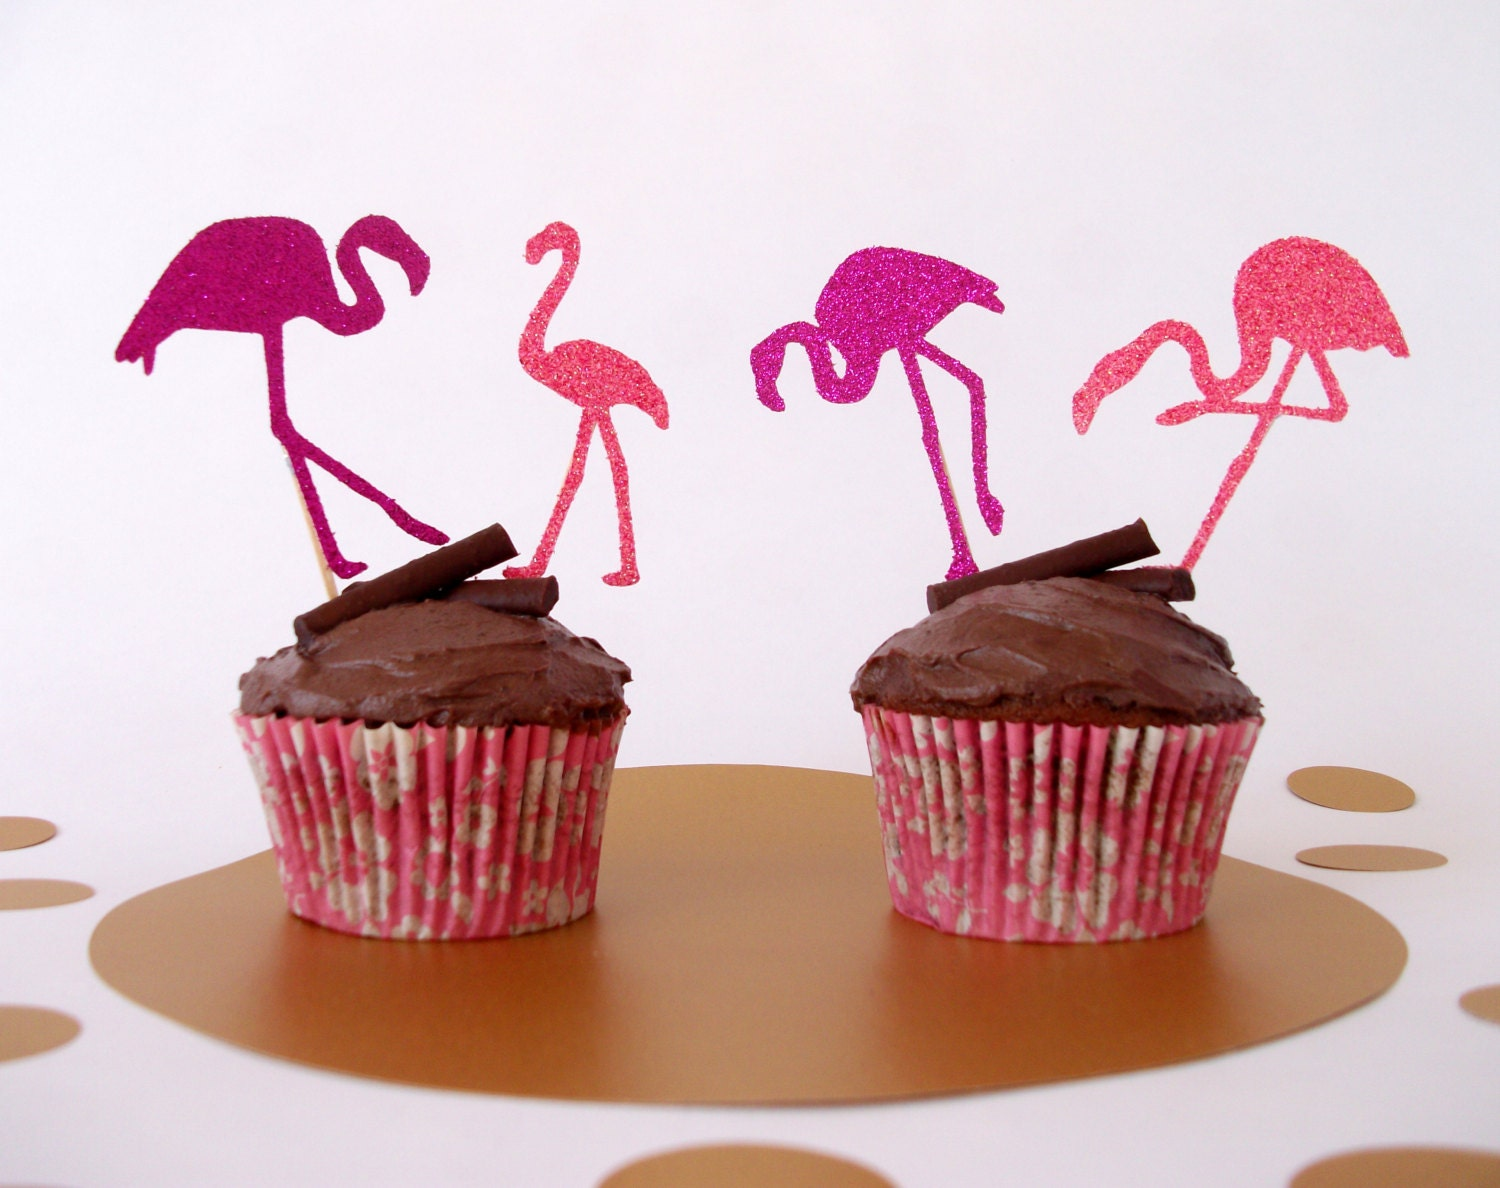 Cake Toppers Etsy Uk : Flamingo Cake Toppers set of 12 Cupcake Toppers Pin Up Cake